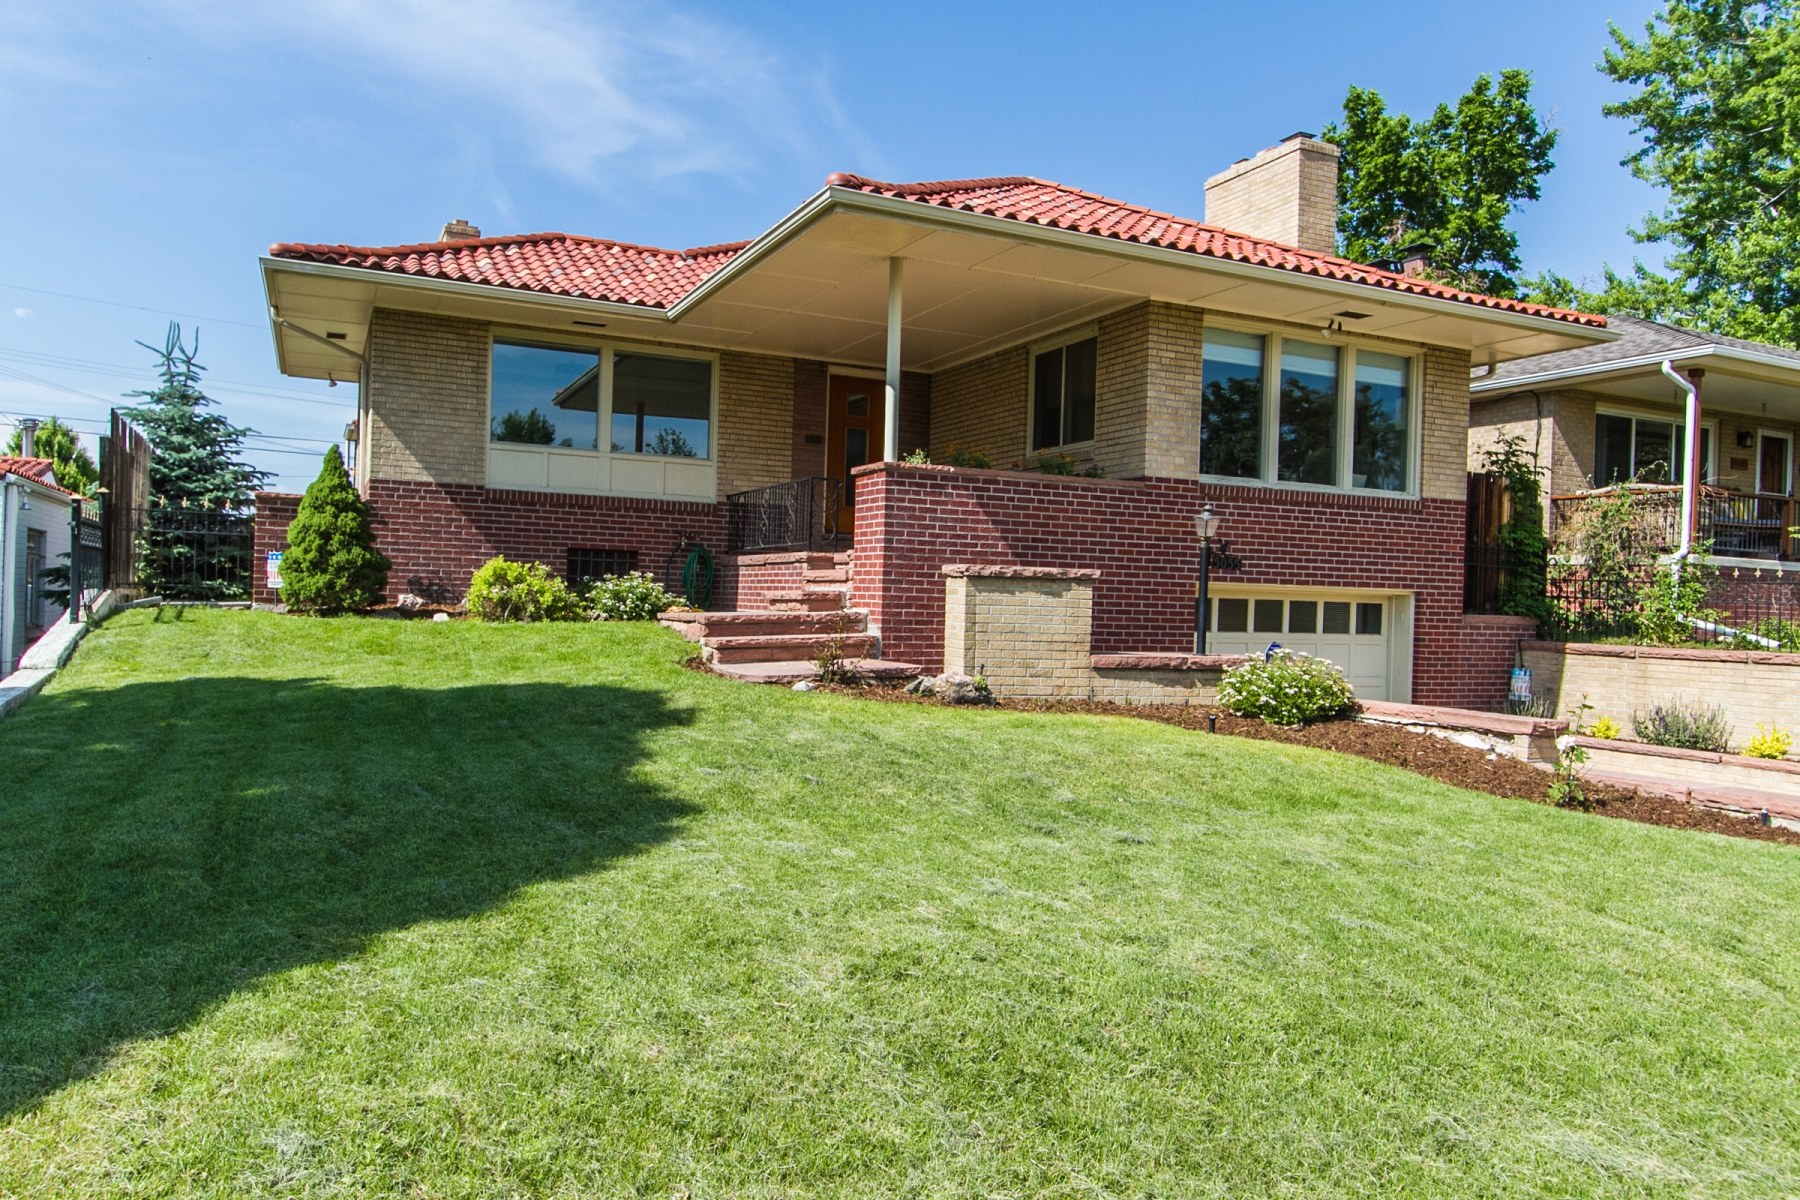 Single Family Home for Sale at 1950s Atomic Ranch in Cottage Hill 5055 West 33rd Avenue Denver, Colorado 80212 United States